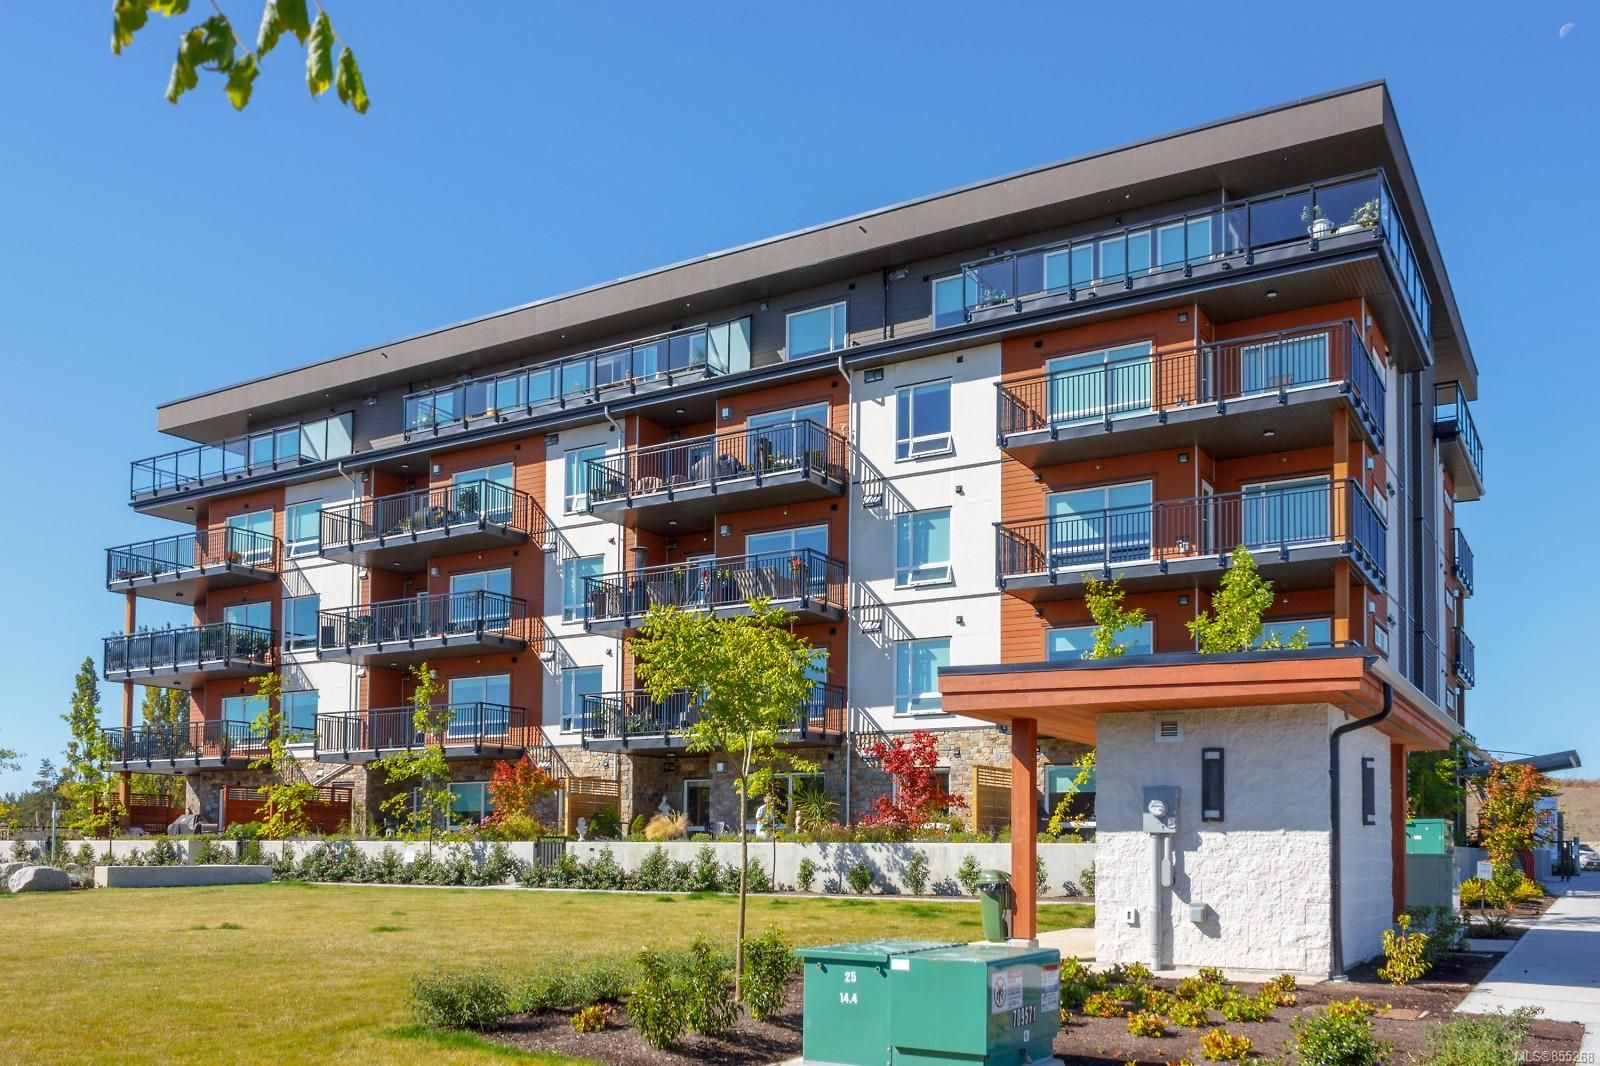 Main Photo: 304 2500 Hackett Cres in : CS Turgoose Condo for sale (Central Saanich)  : MLS®# 855268